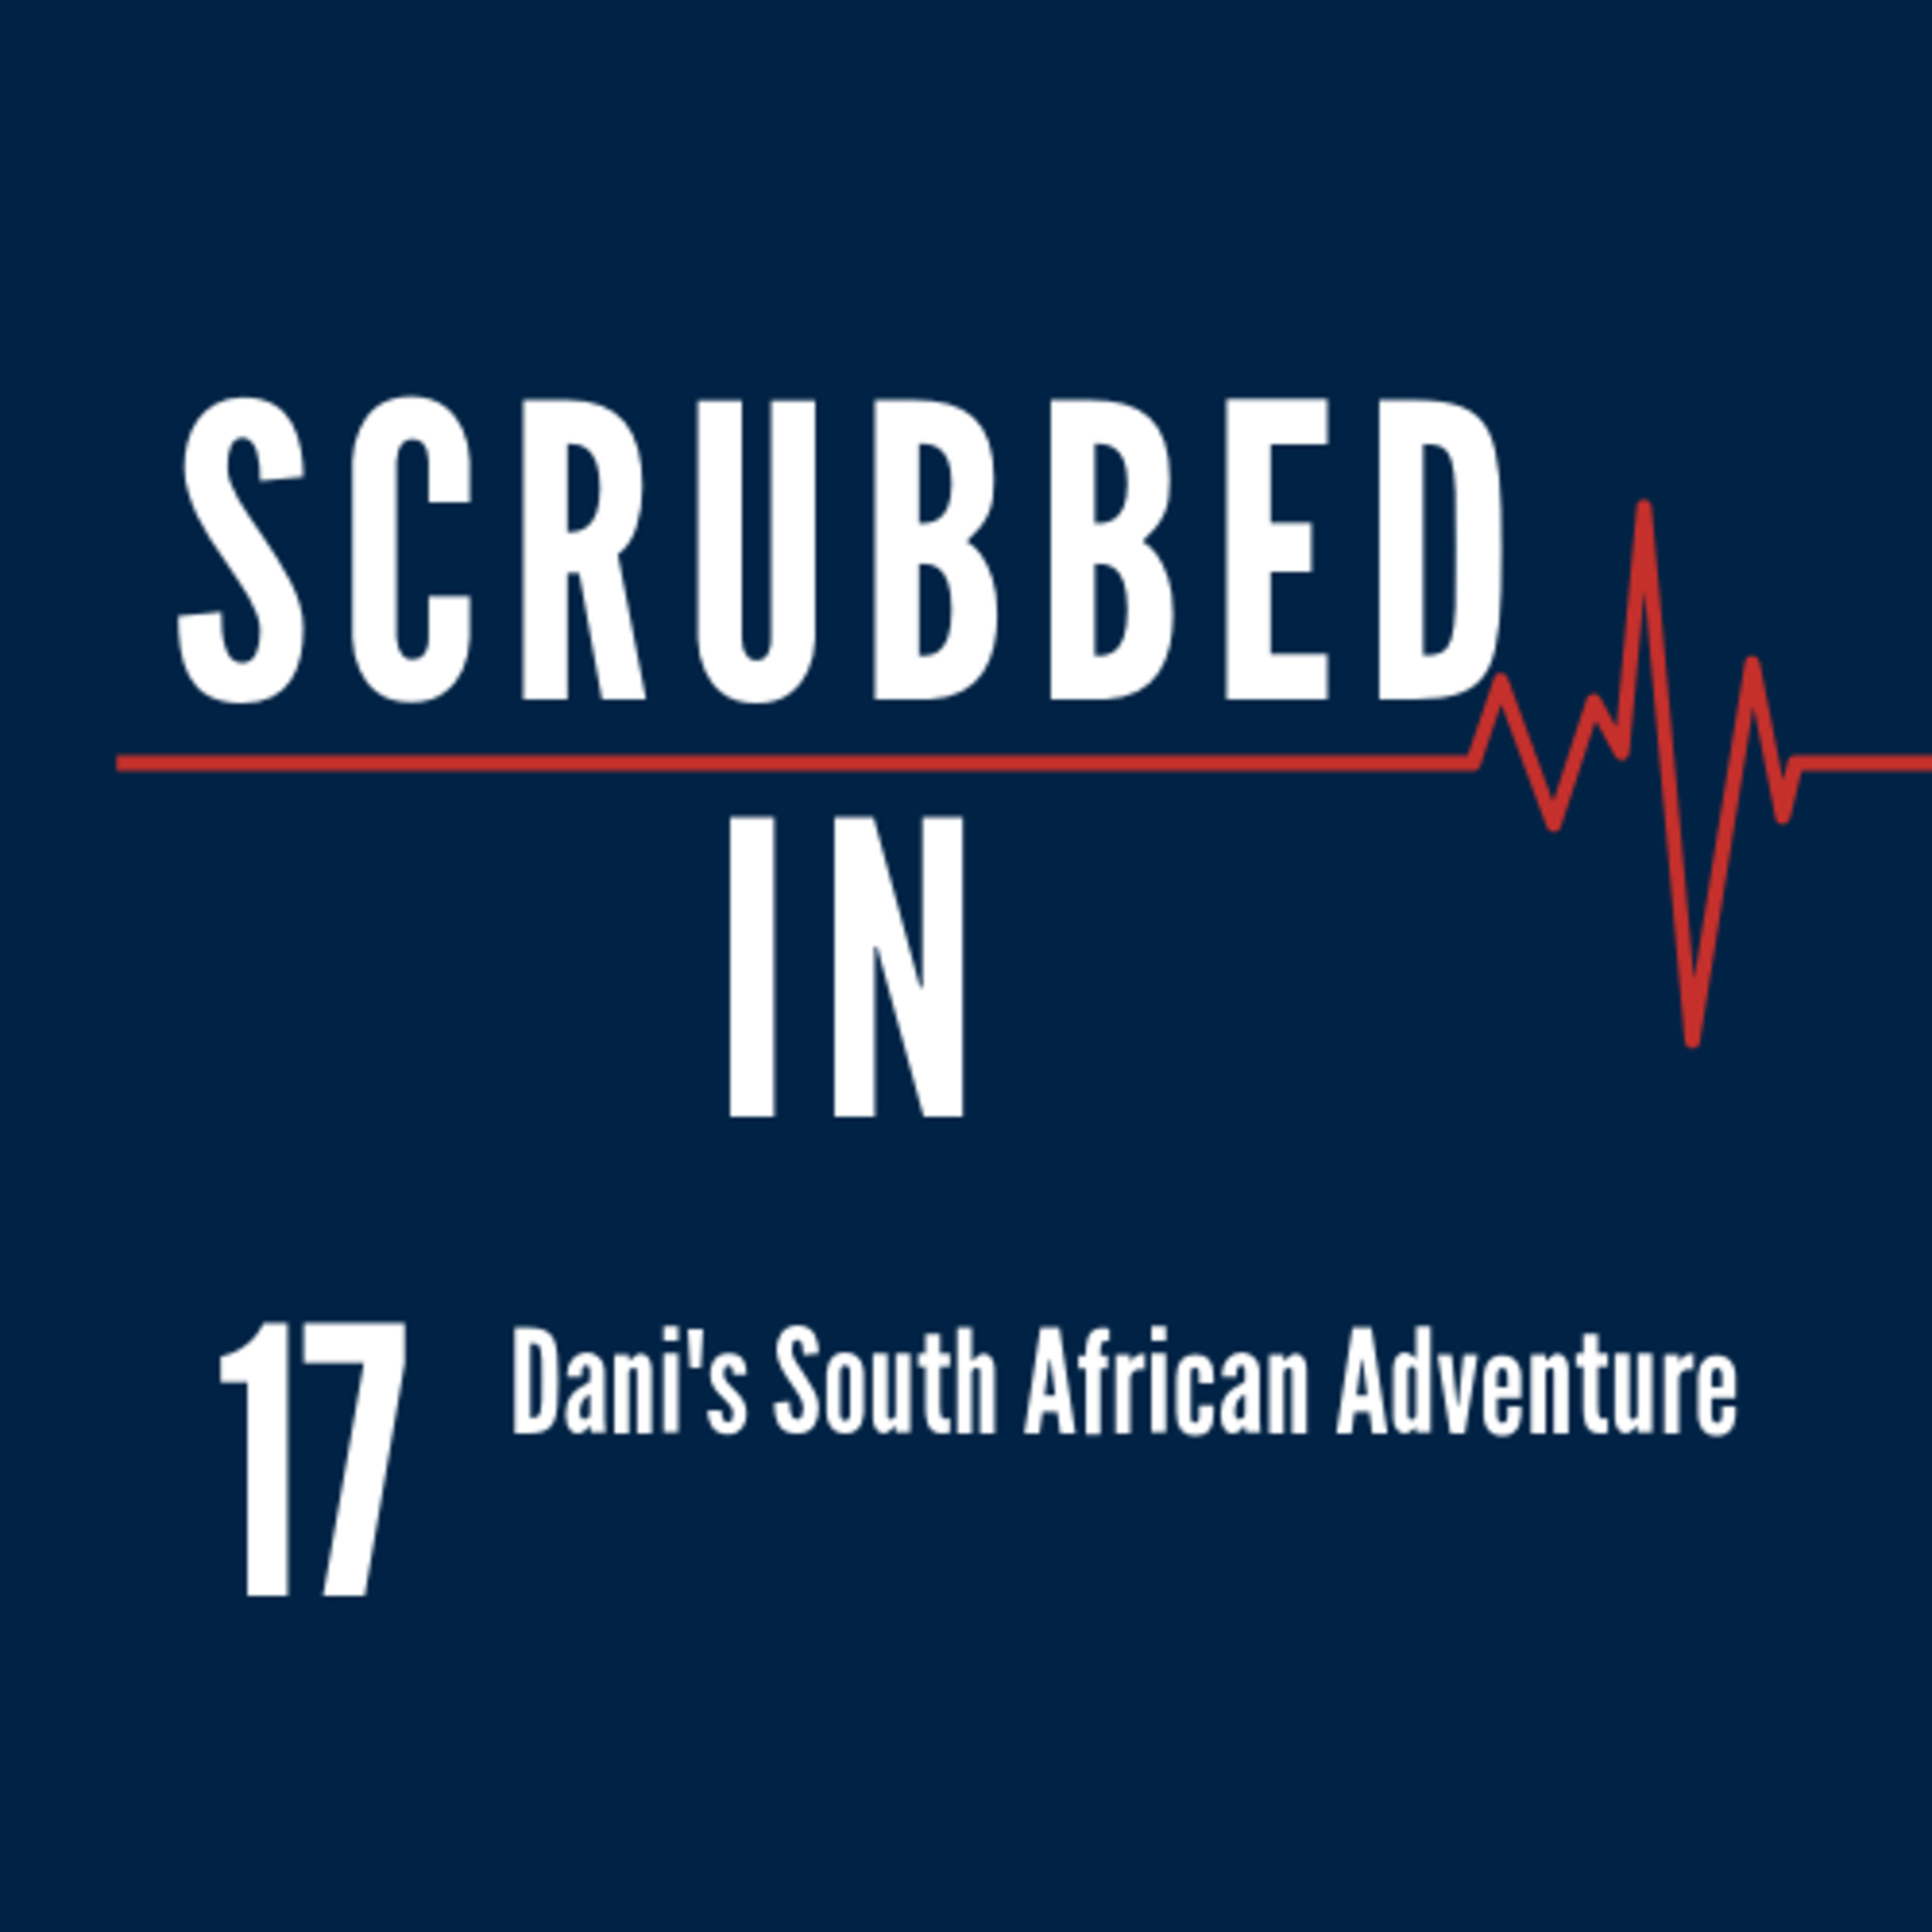 Scrubbed In - Dani's South African Adventure